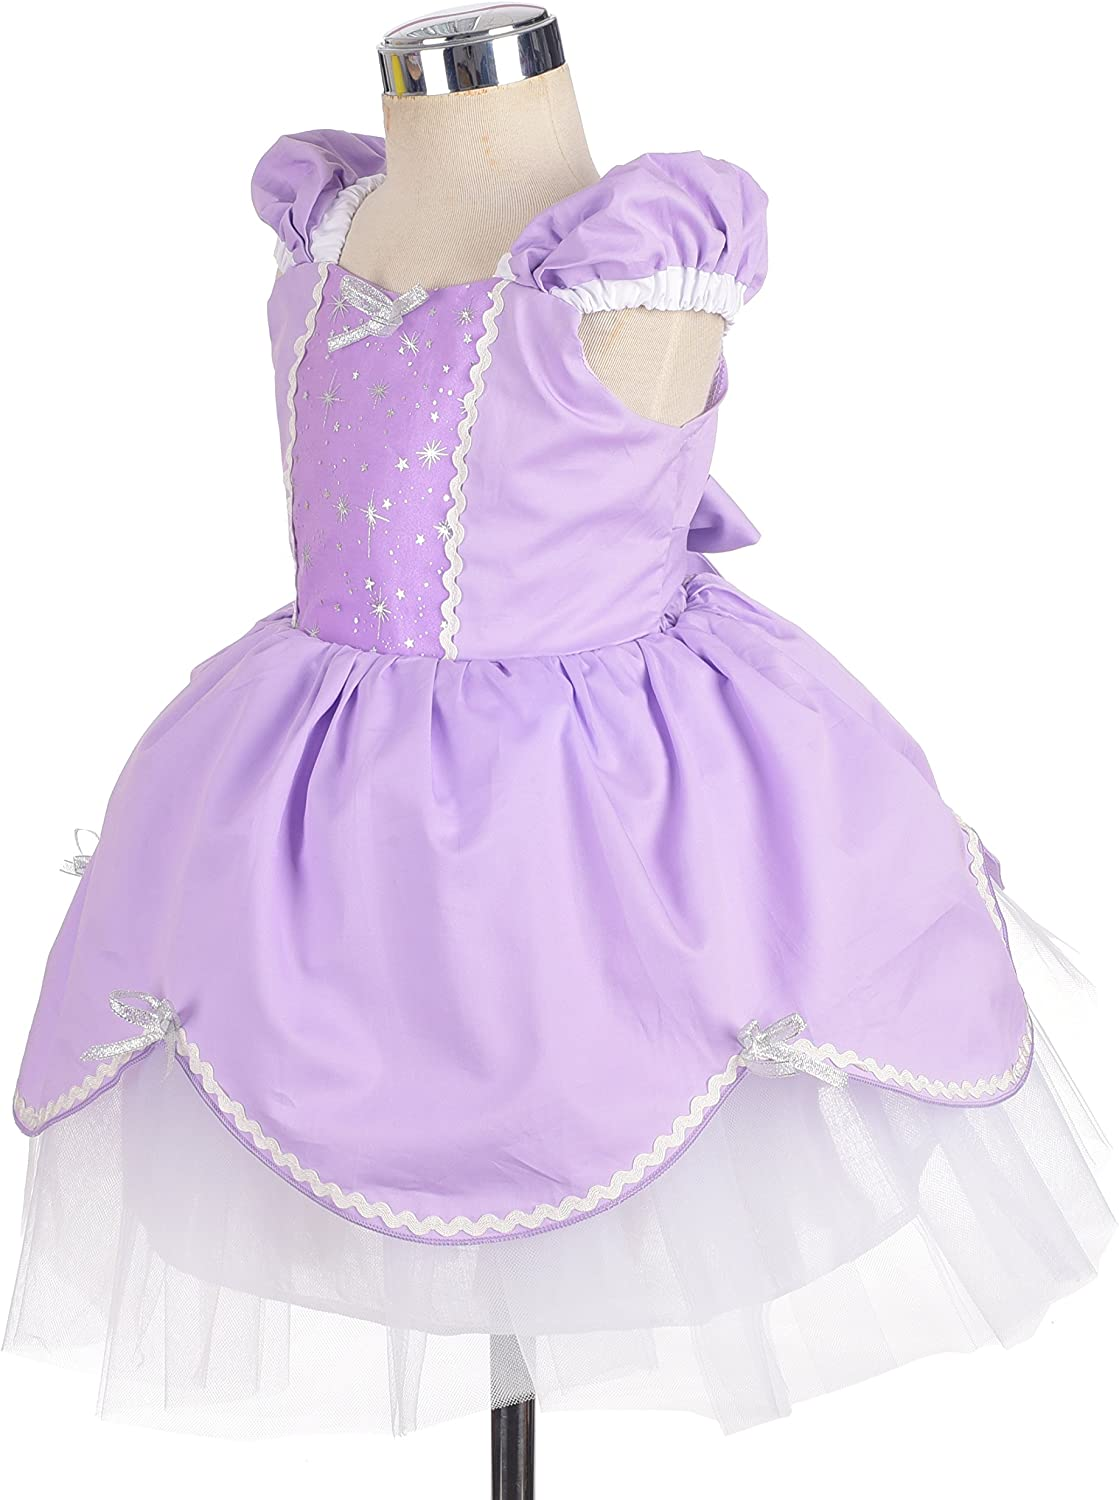 Lito Angels Girls Princess Cinderella Dress Costumes Summer Dress up Halloween Party Size 2-3 Years